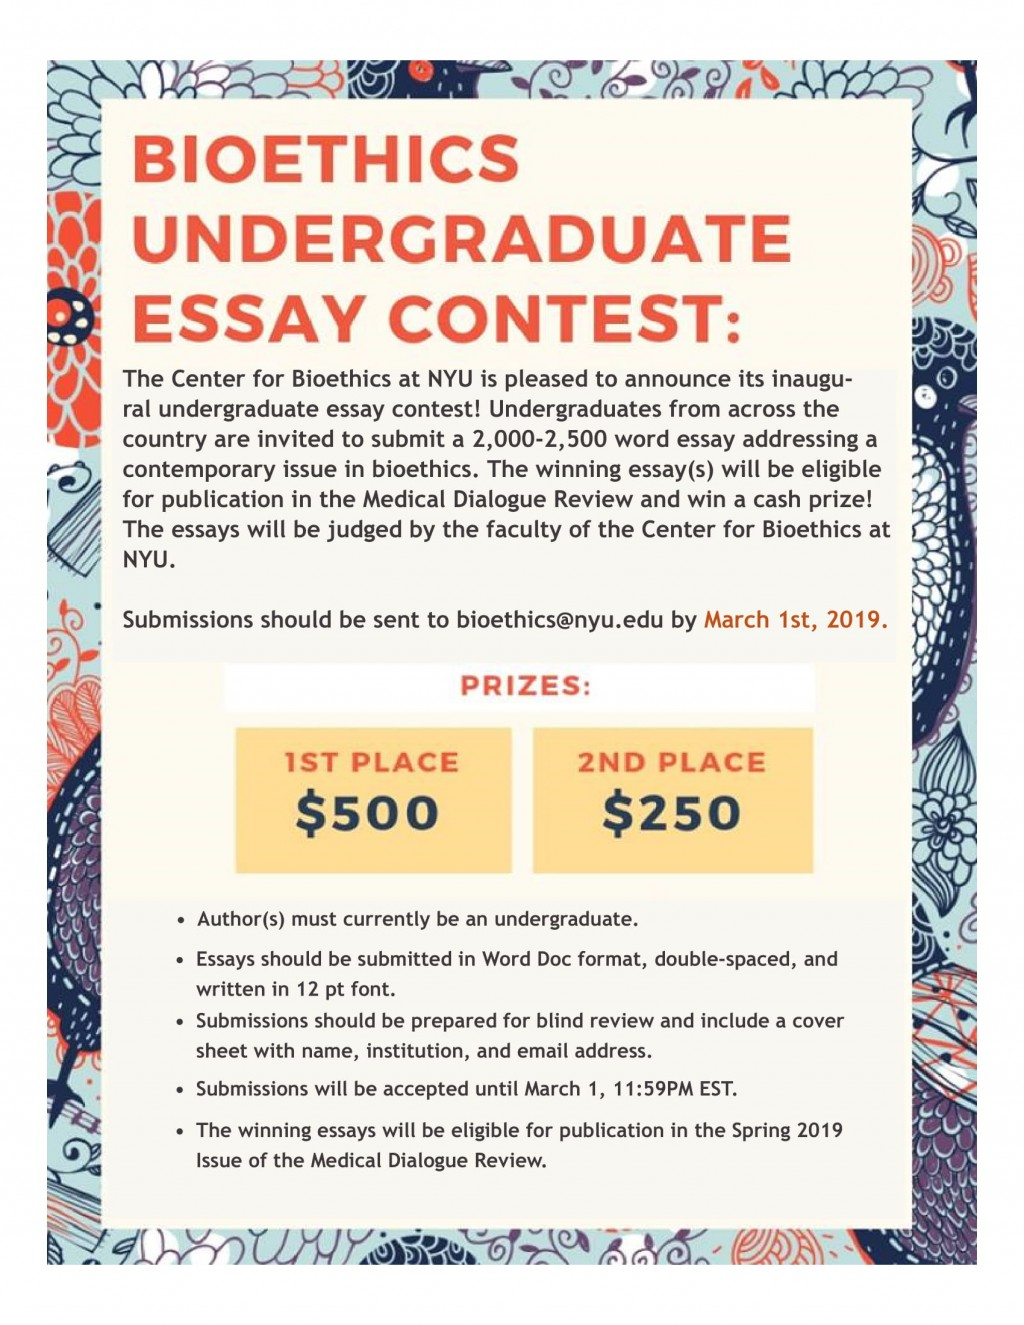 010 Nyu Essay Example Bioethics Contest Flier Awful Word Limit Supplement Stern Prompt Large